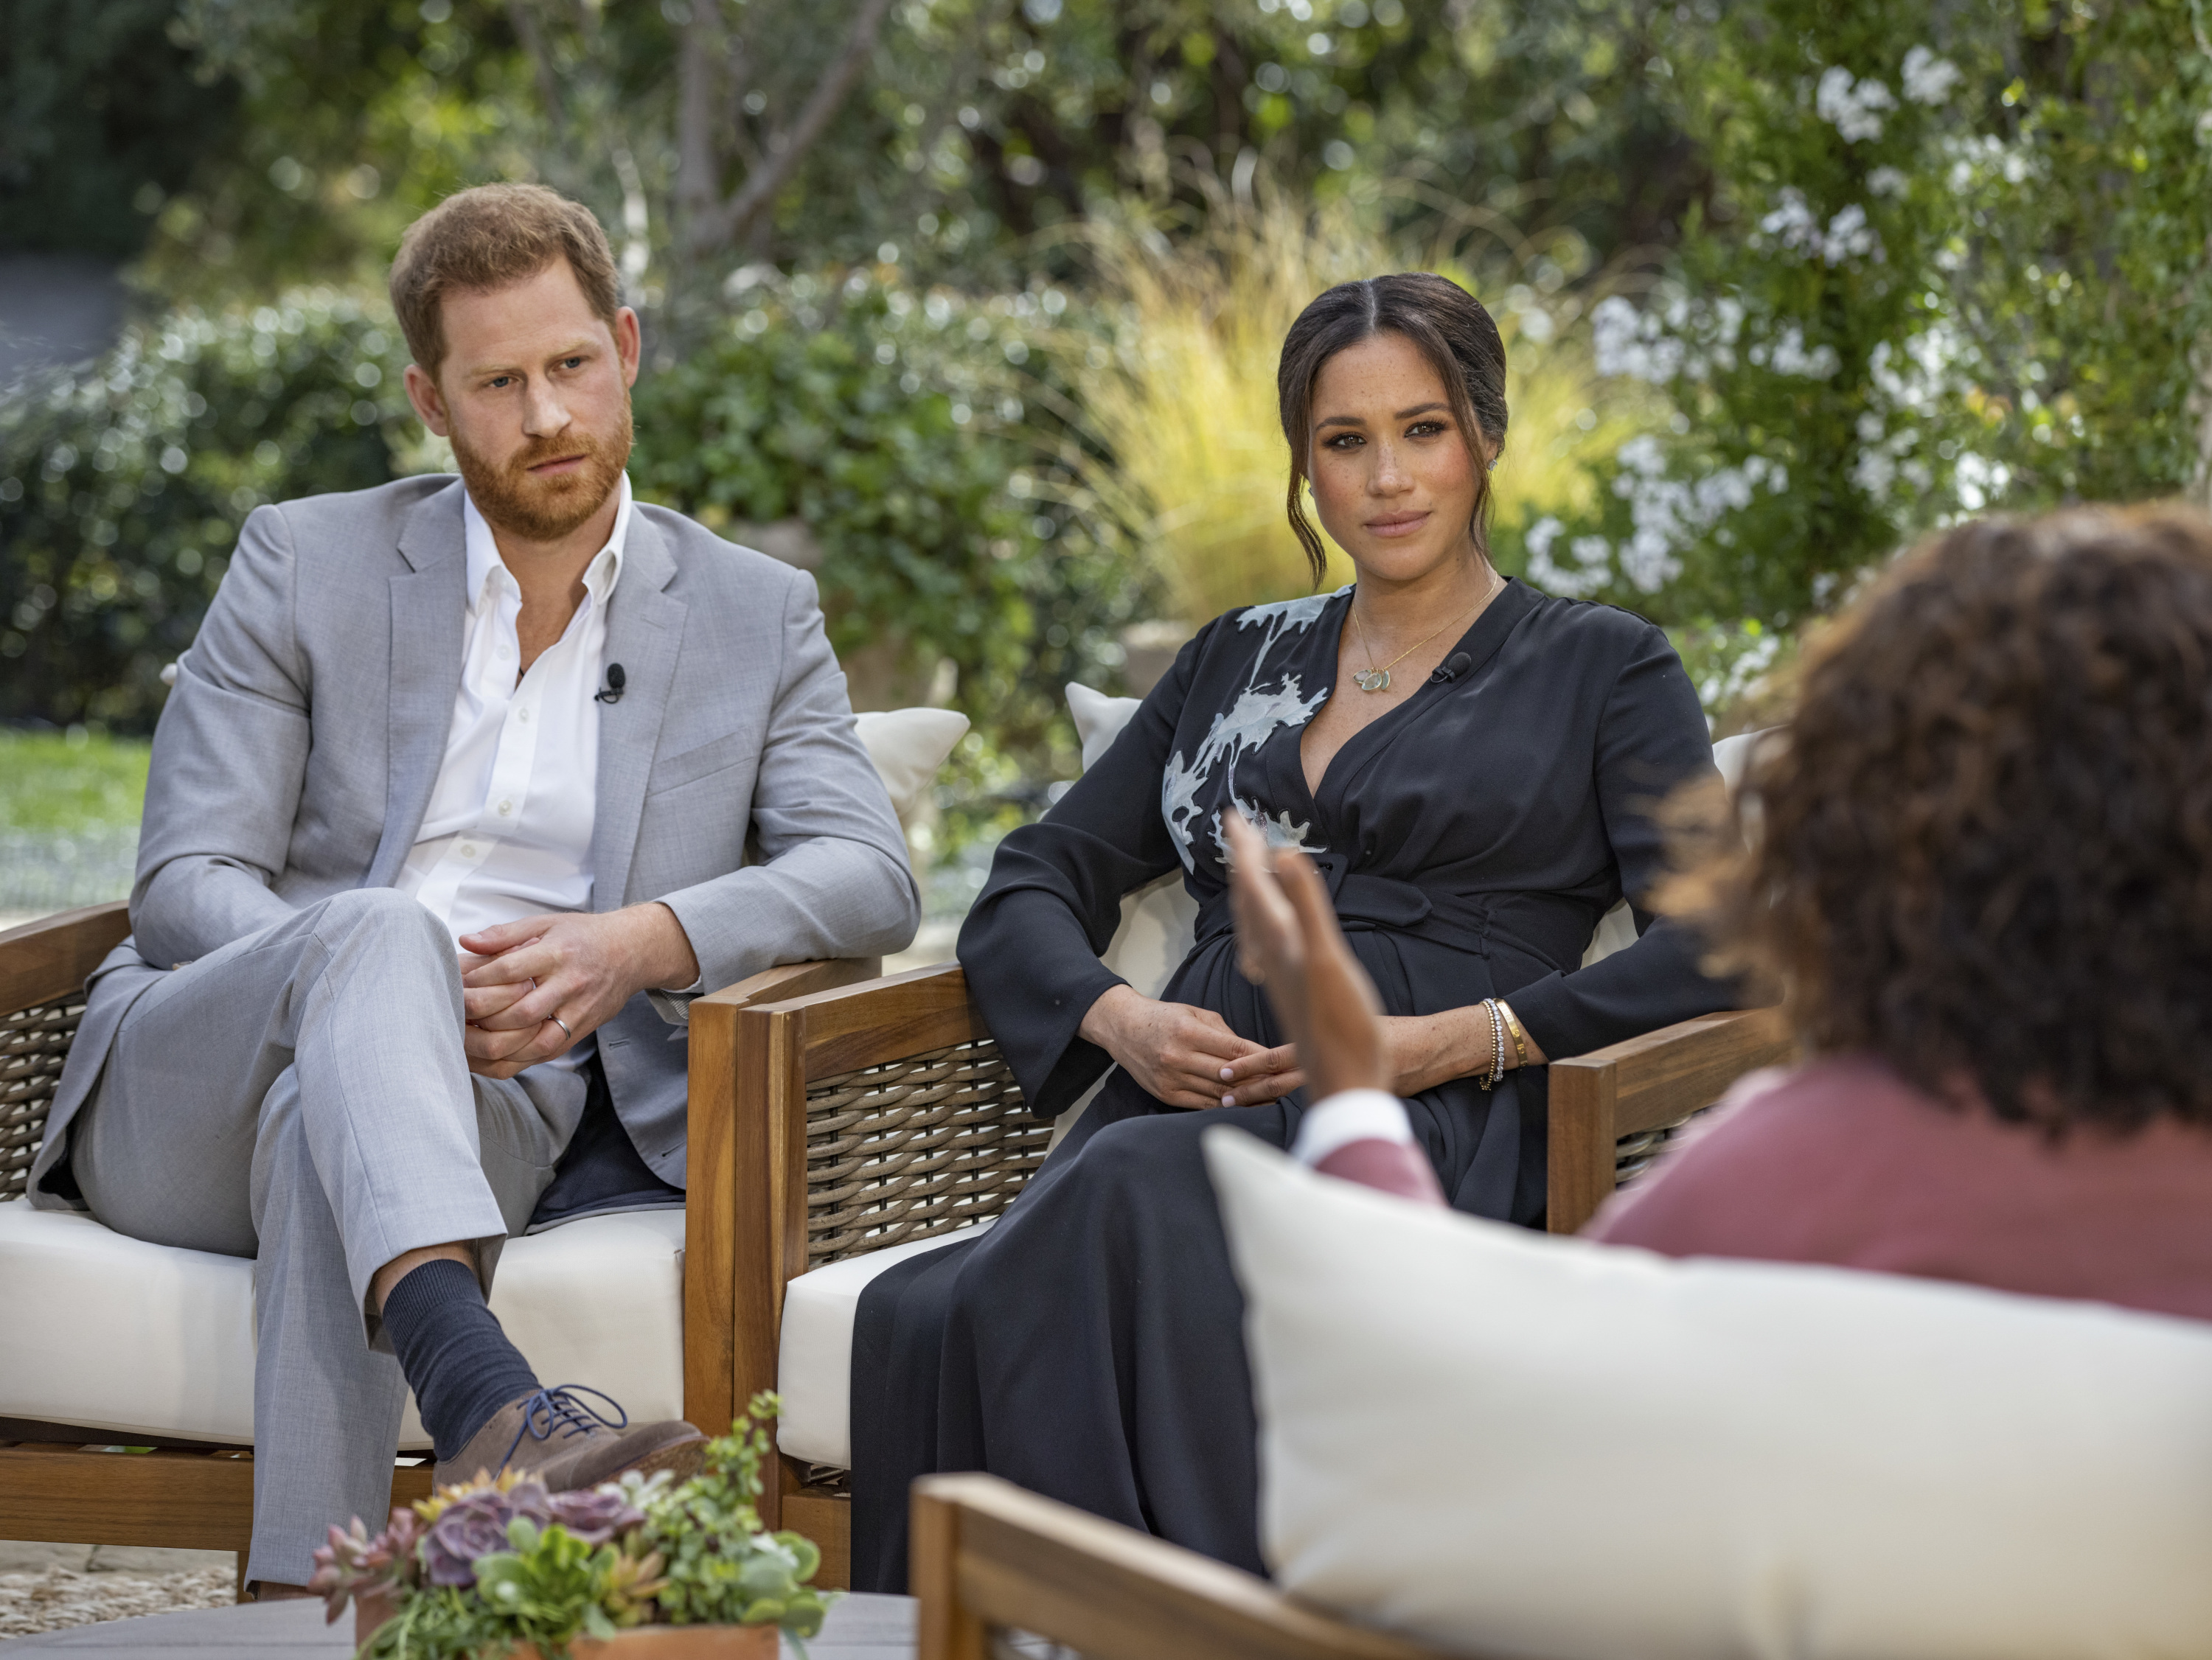 Prince Harry and Meghan Markle sit in chairs opposite Oprah